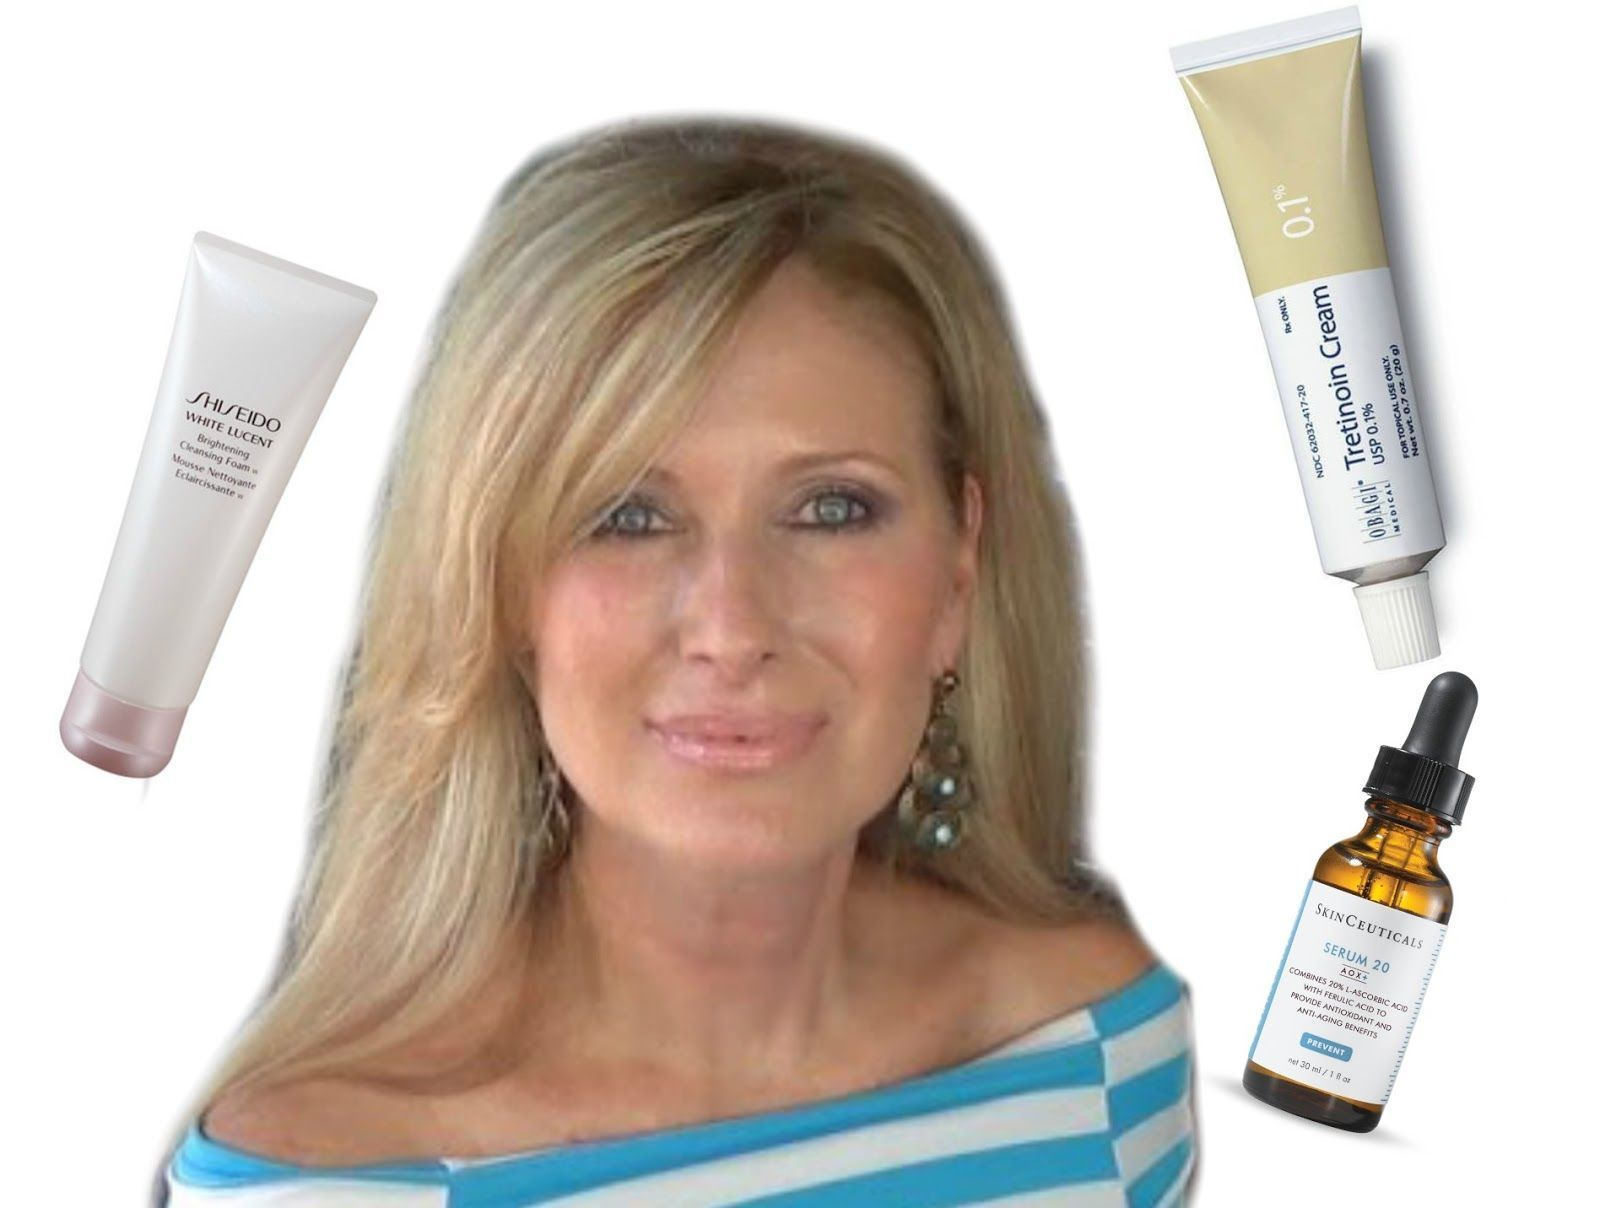 Most Gorgeous 60 Year Old Reveals Her Skin Care Secrets This Is The Best Anti Aging Skin Care Skin Care Secrets Skin Care Blackheads Organic Skin Care Routine